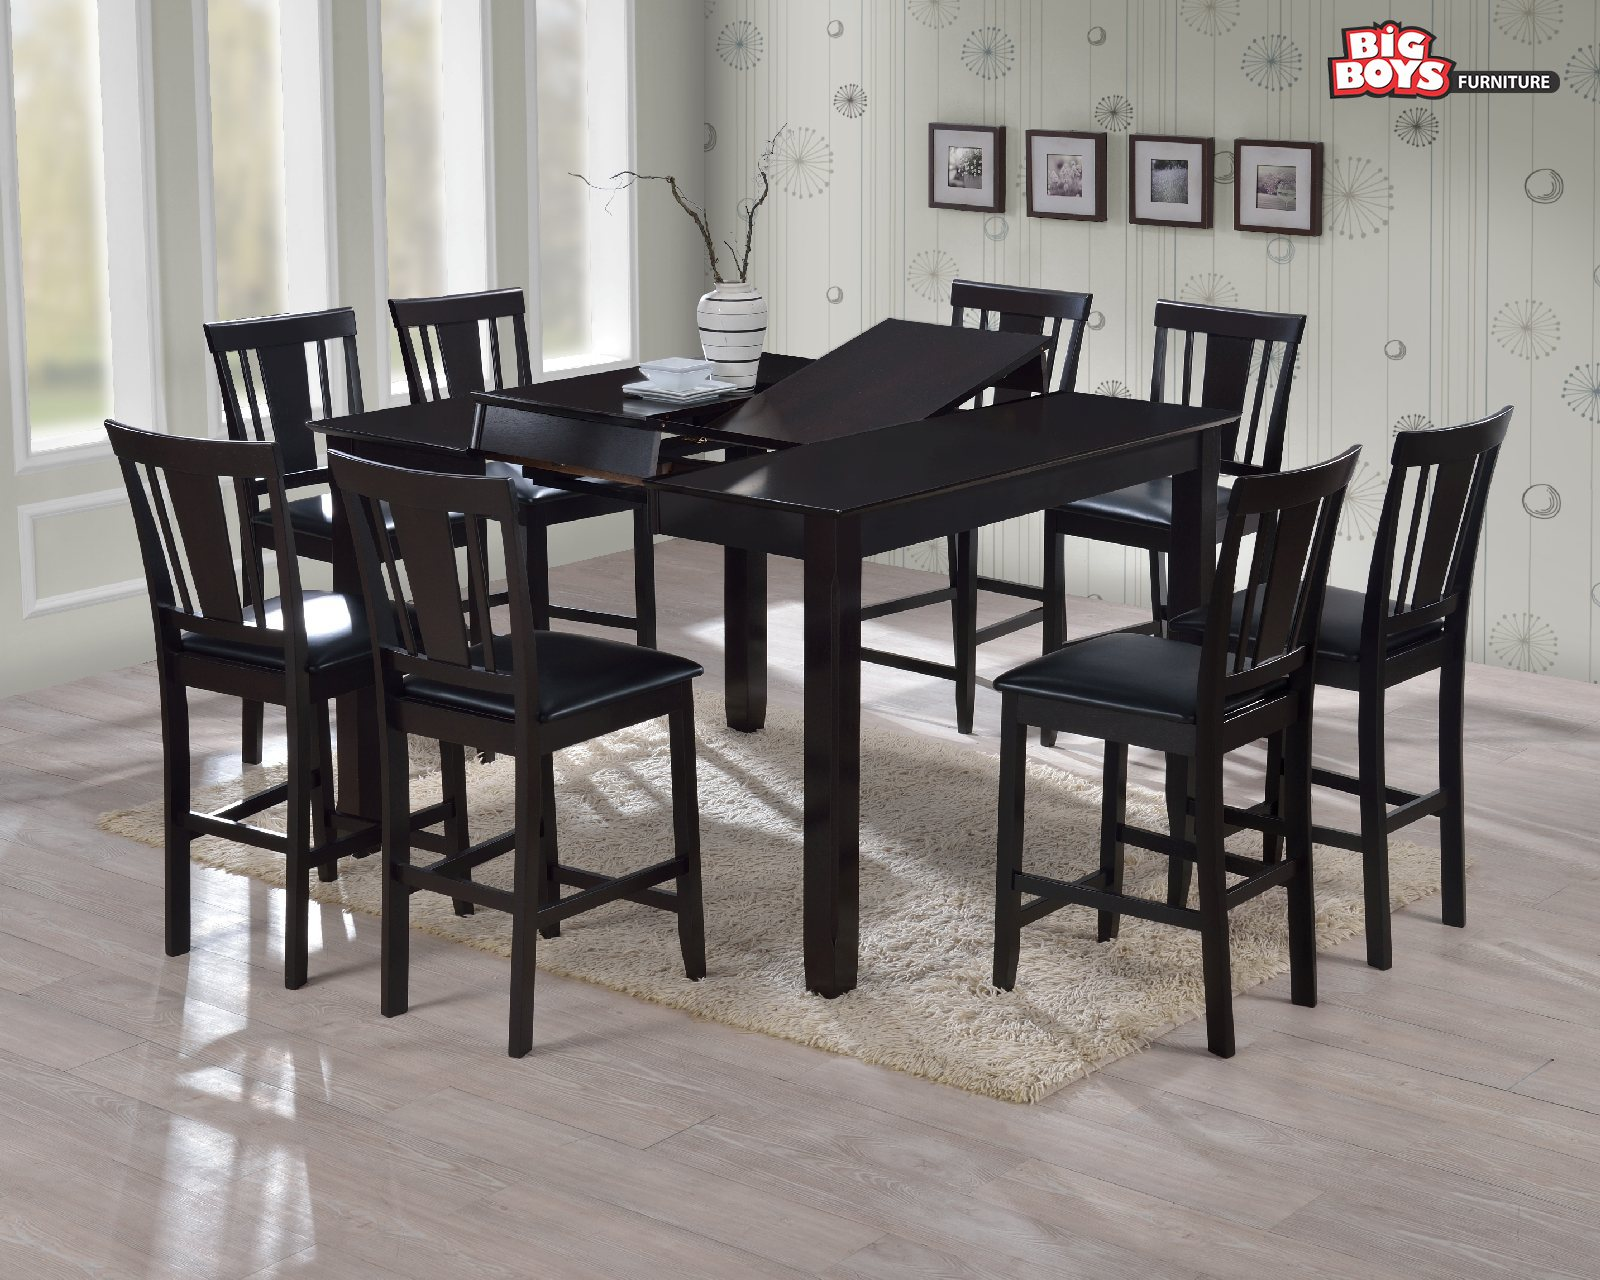 Dining Tables Big-Boys-Furniture-Delta